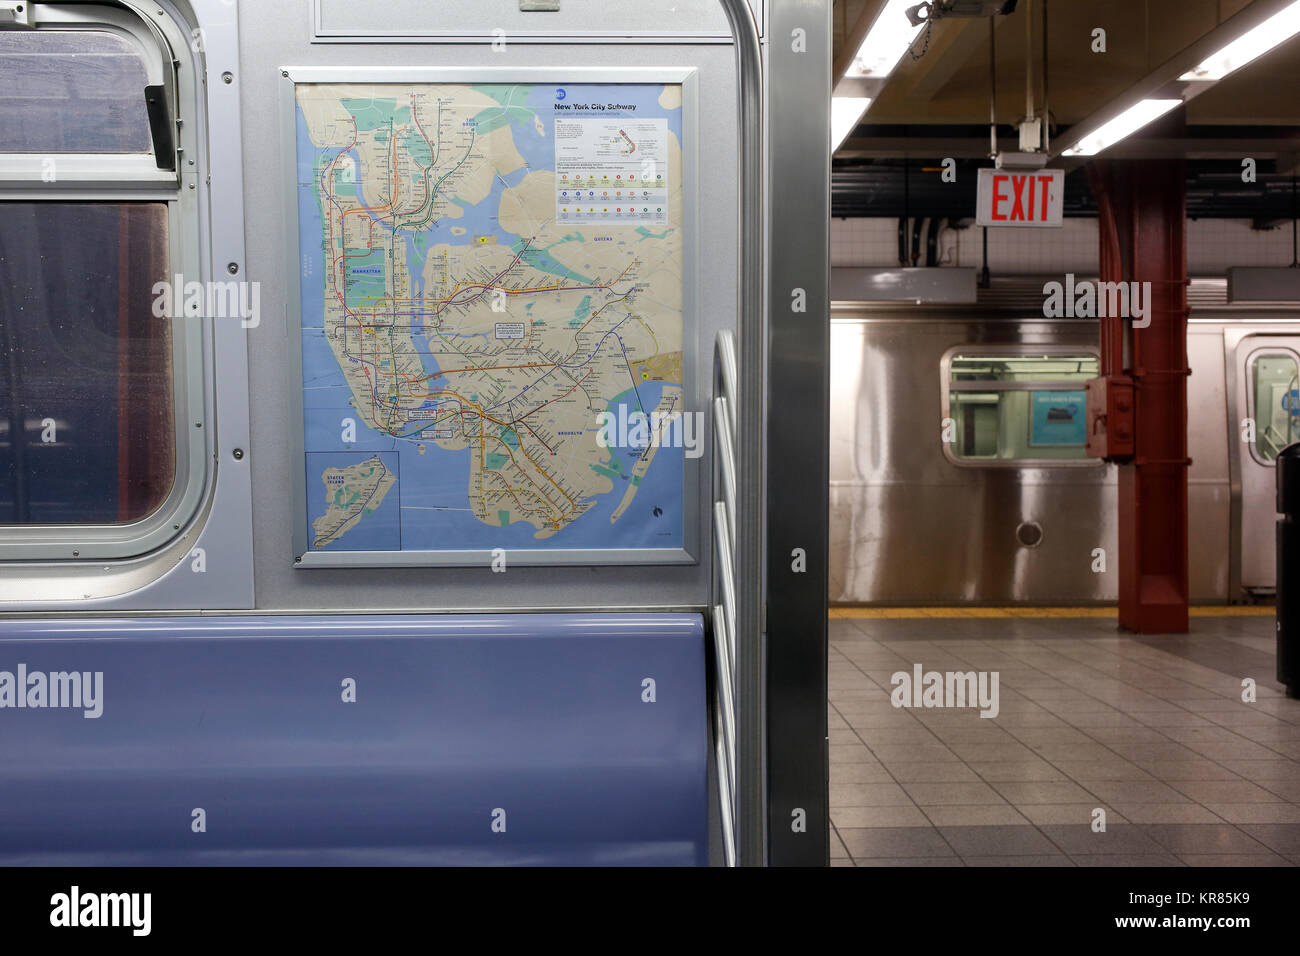 new york city subway map displayed inside train stock image